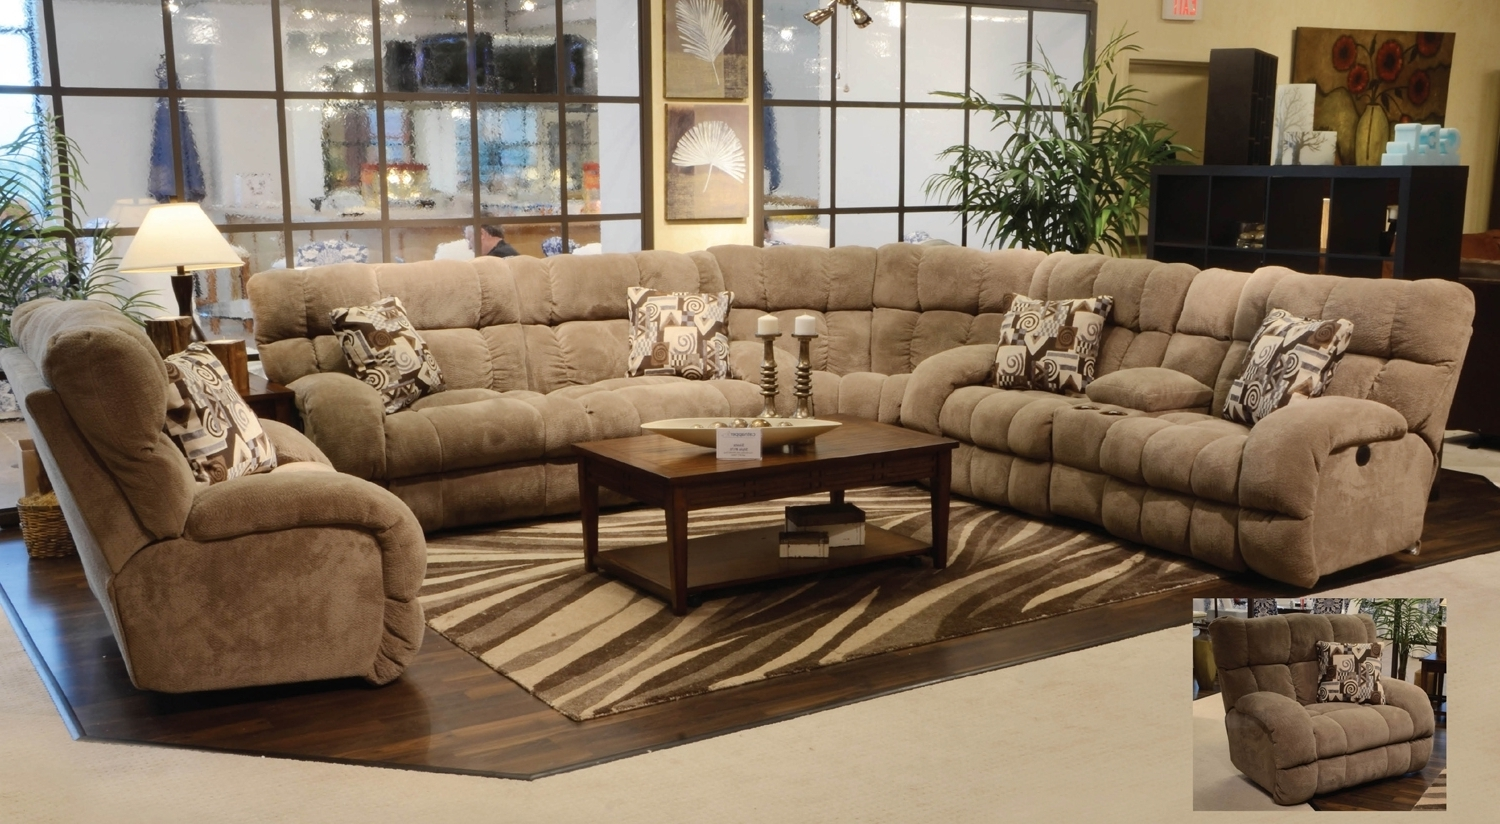 Popular Scarborough Sectional Sofas With Arrange A Living Room With Large Sectional Sofas — The Home Redesign (View 13 of 20)